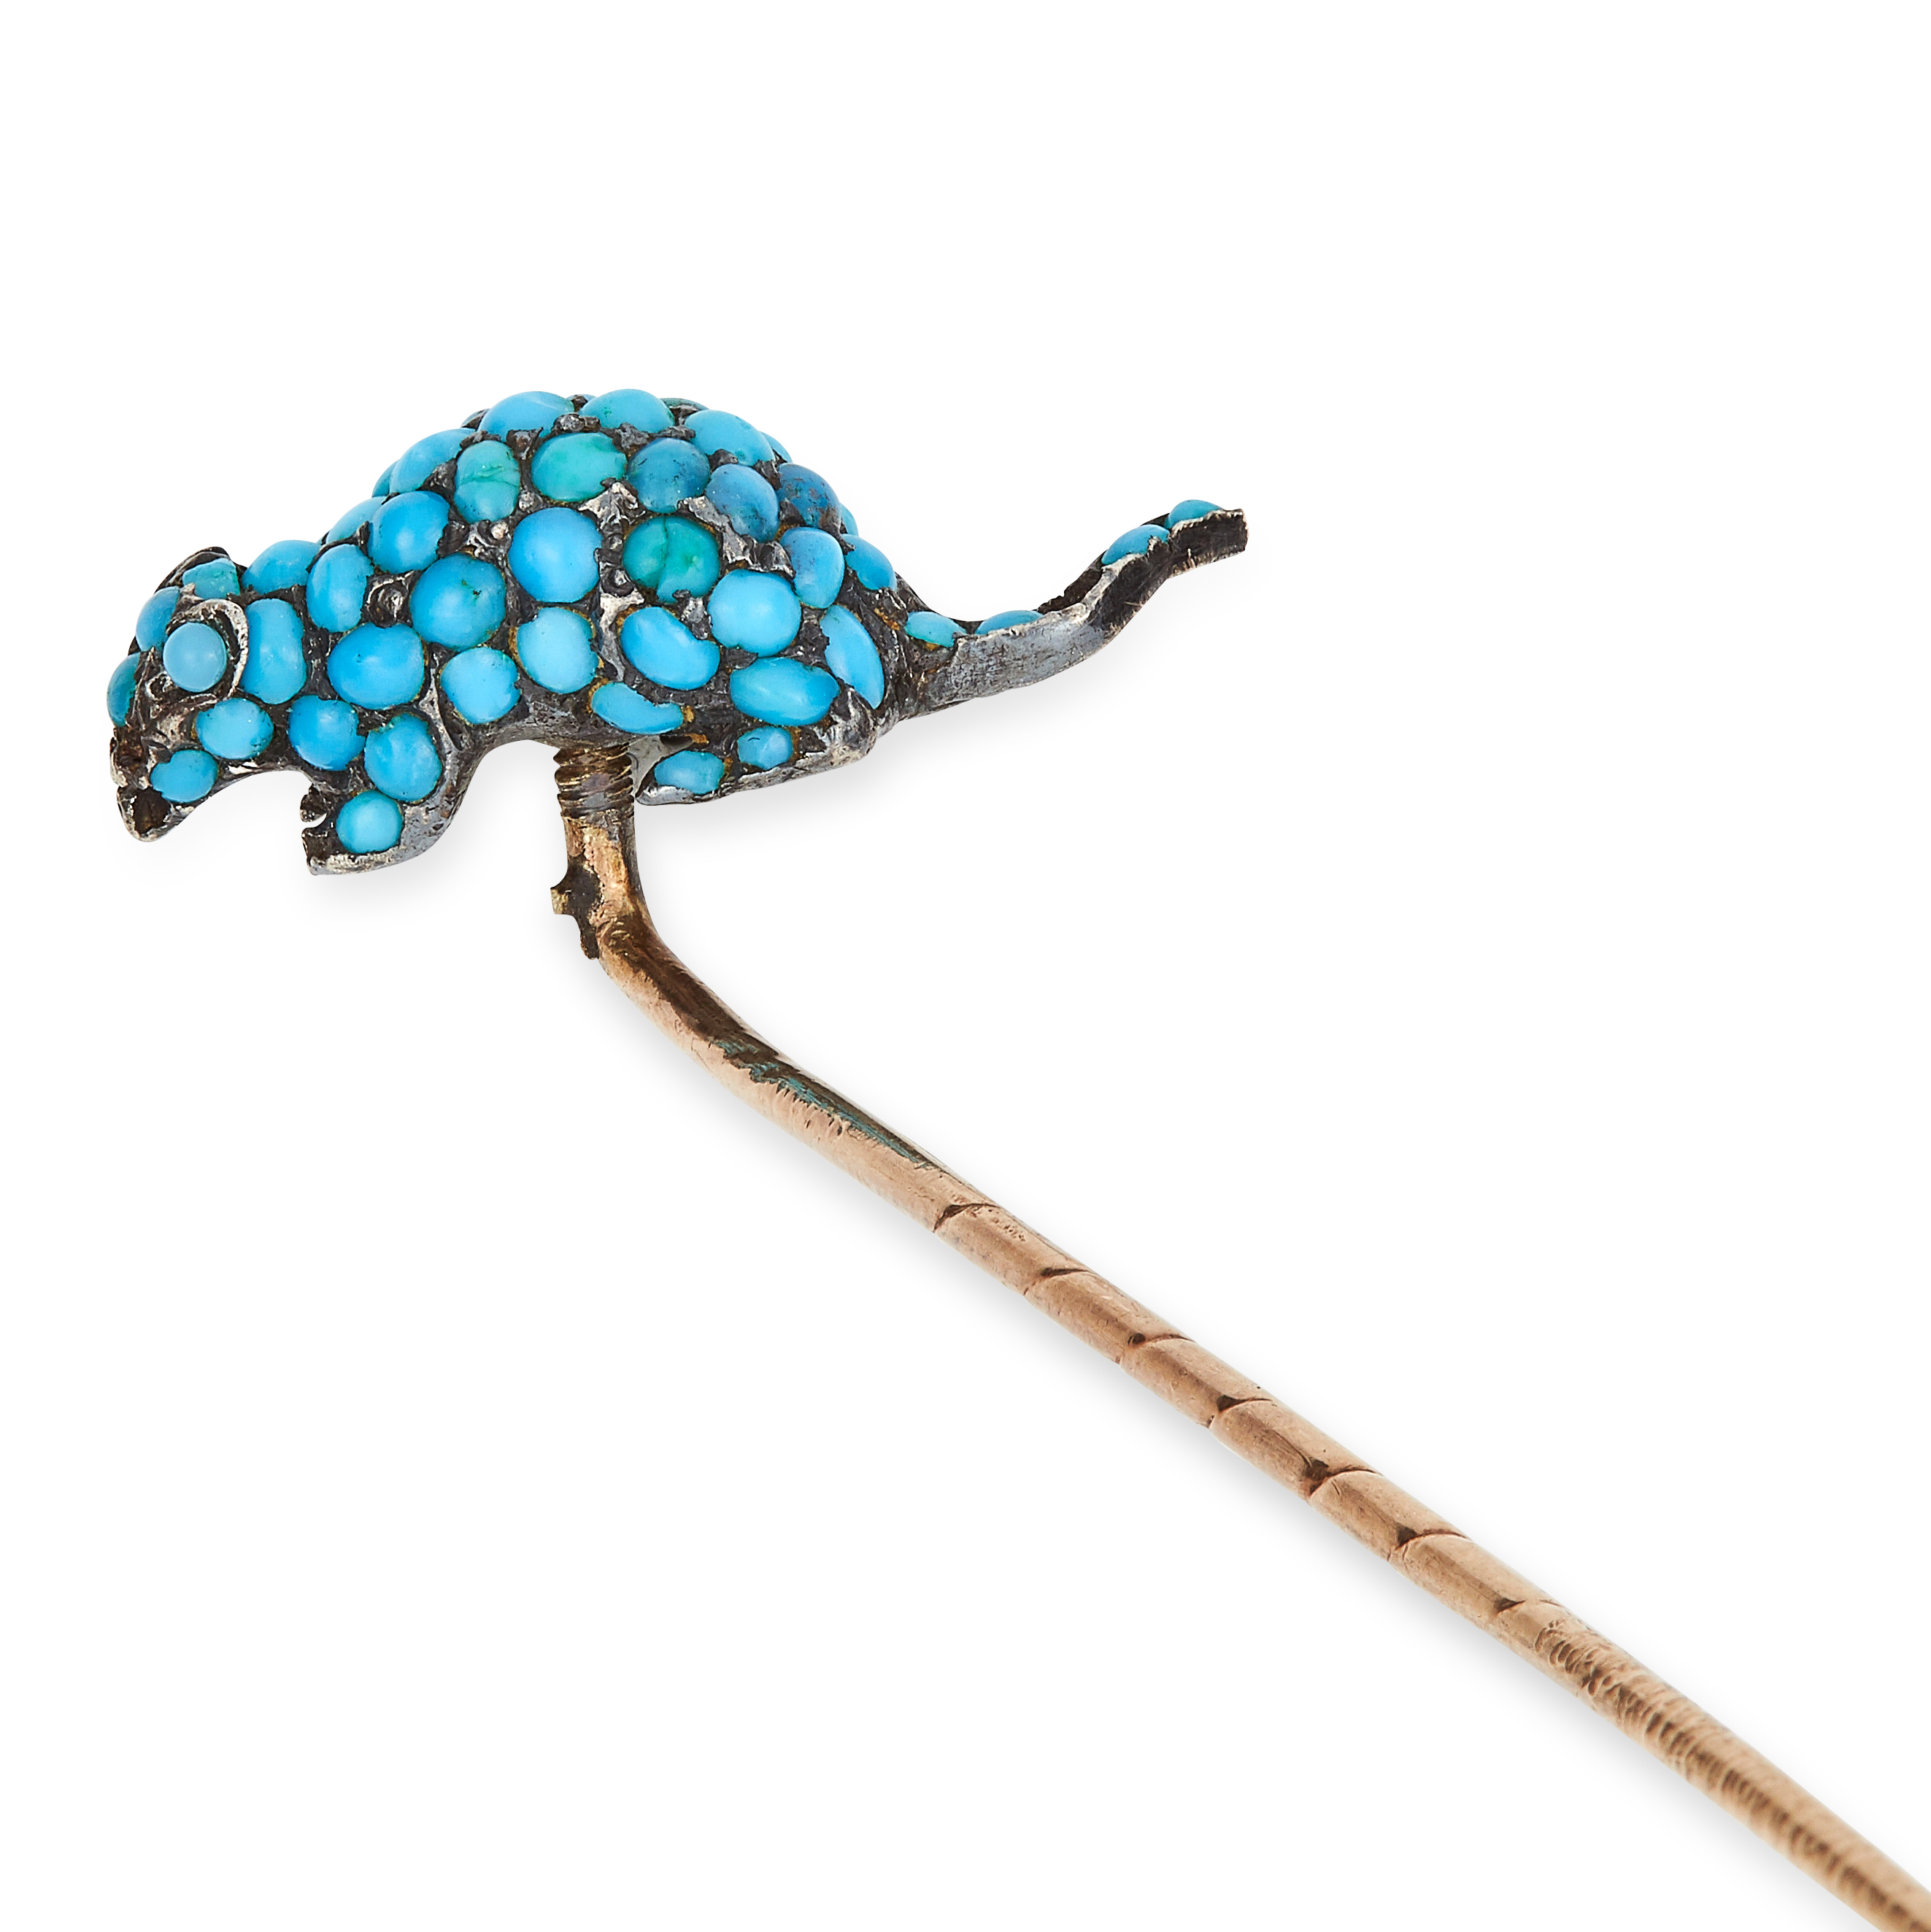 Los 48 - ANTIQUE TURQUOISE RAT / MOUSE STICK PIN set with turquoise cabochons, 7.4cm, 4.4g.